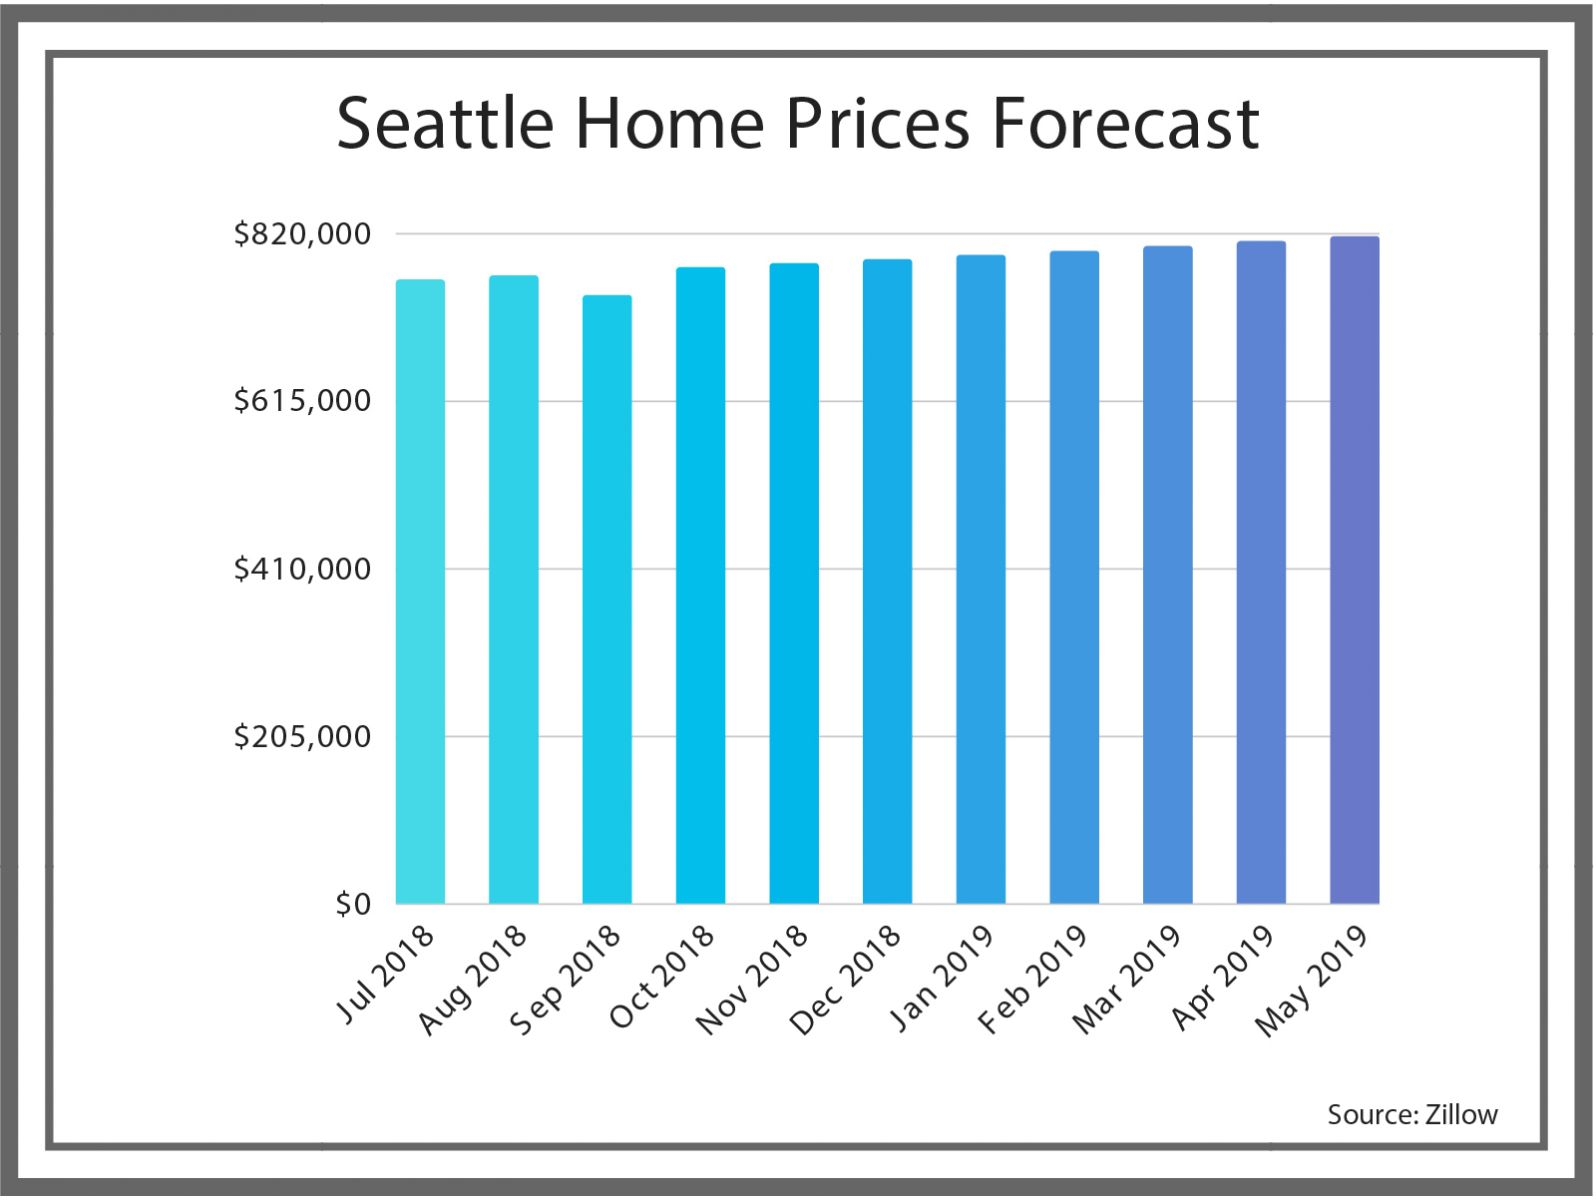 Graph Showing the Forecast for Seattle Home Prices